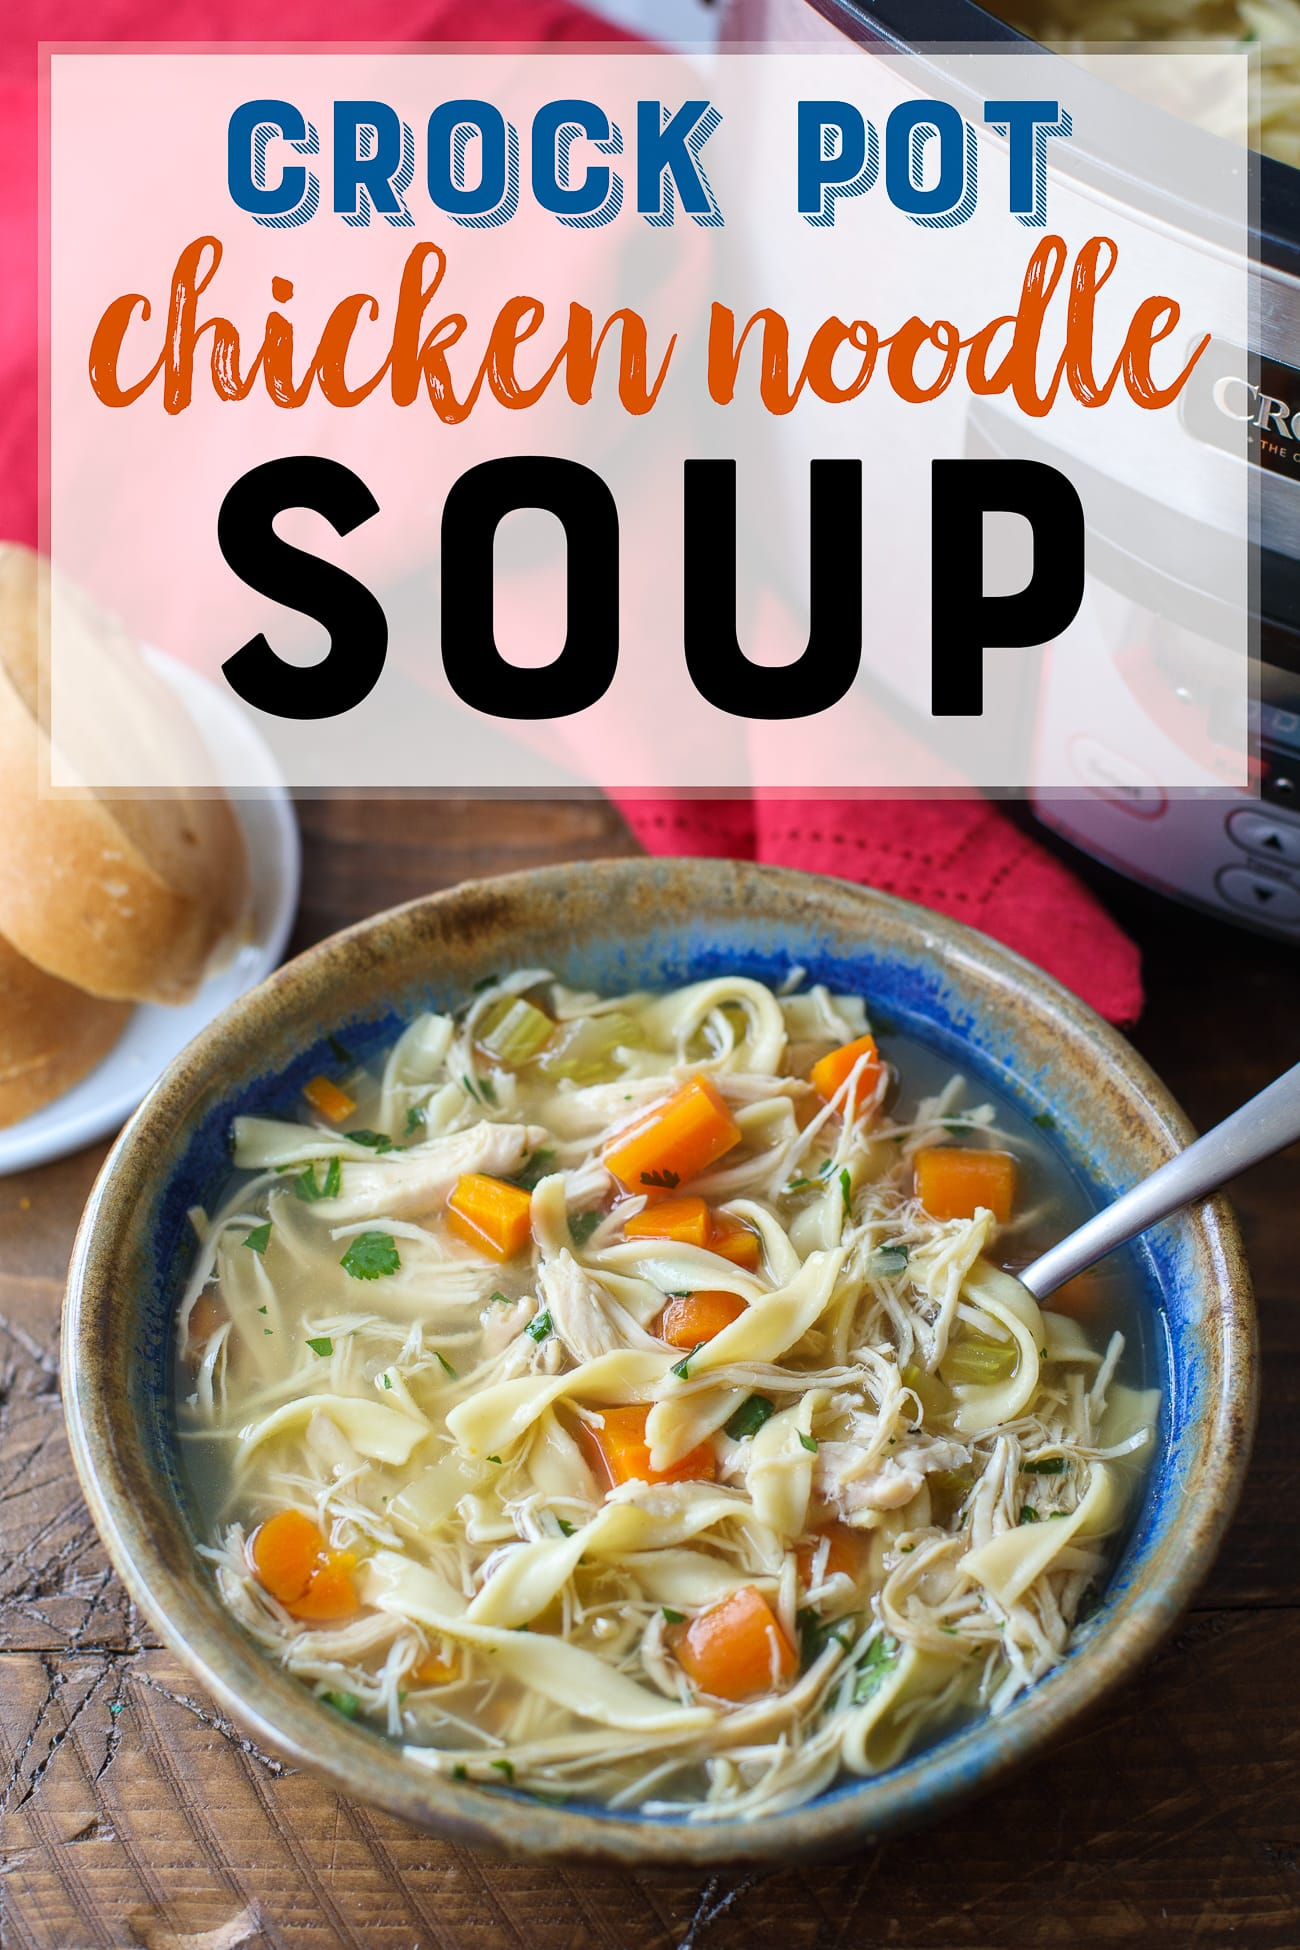 Crock Pot Chicken Noodle Soup Recipe - Slow Cooker Chicken Soup - Best Chicken Noodle Soup #Soup #Recipe #Chicken #CrockPot #SlowCooker